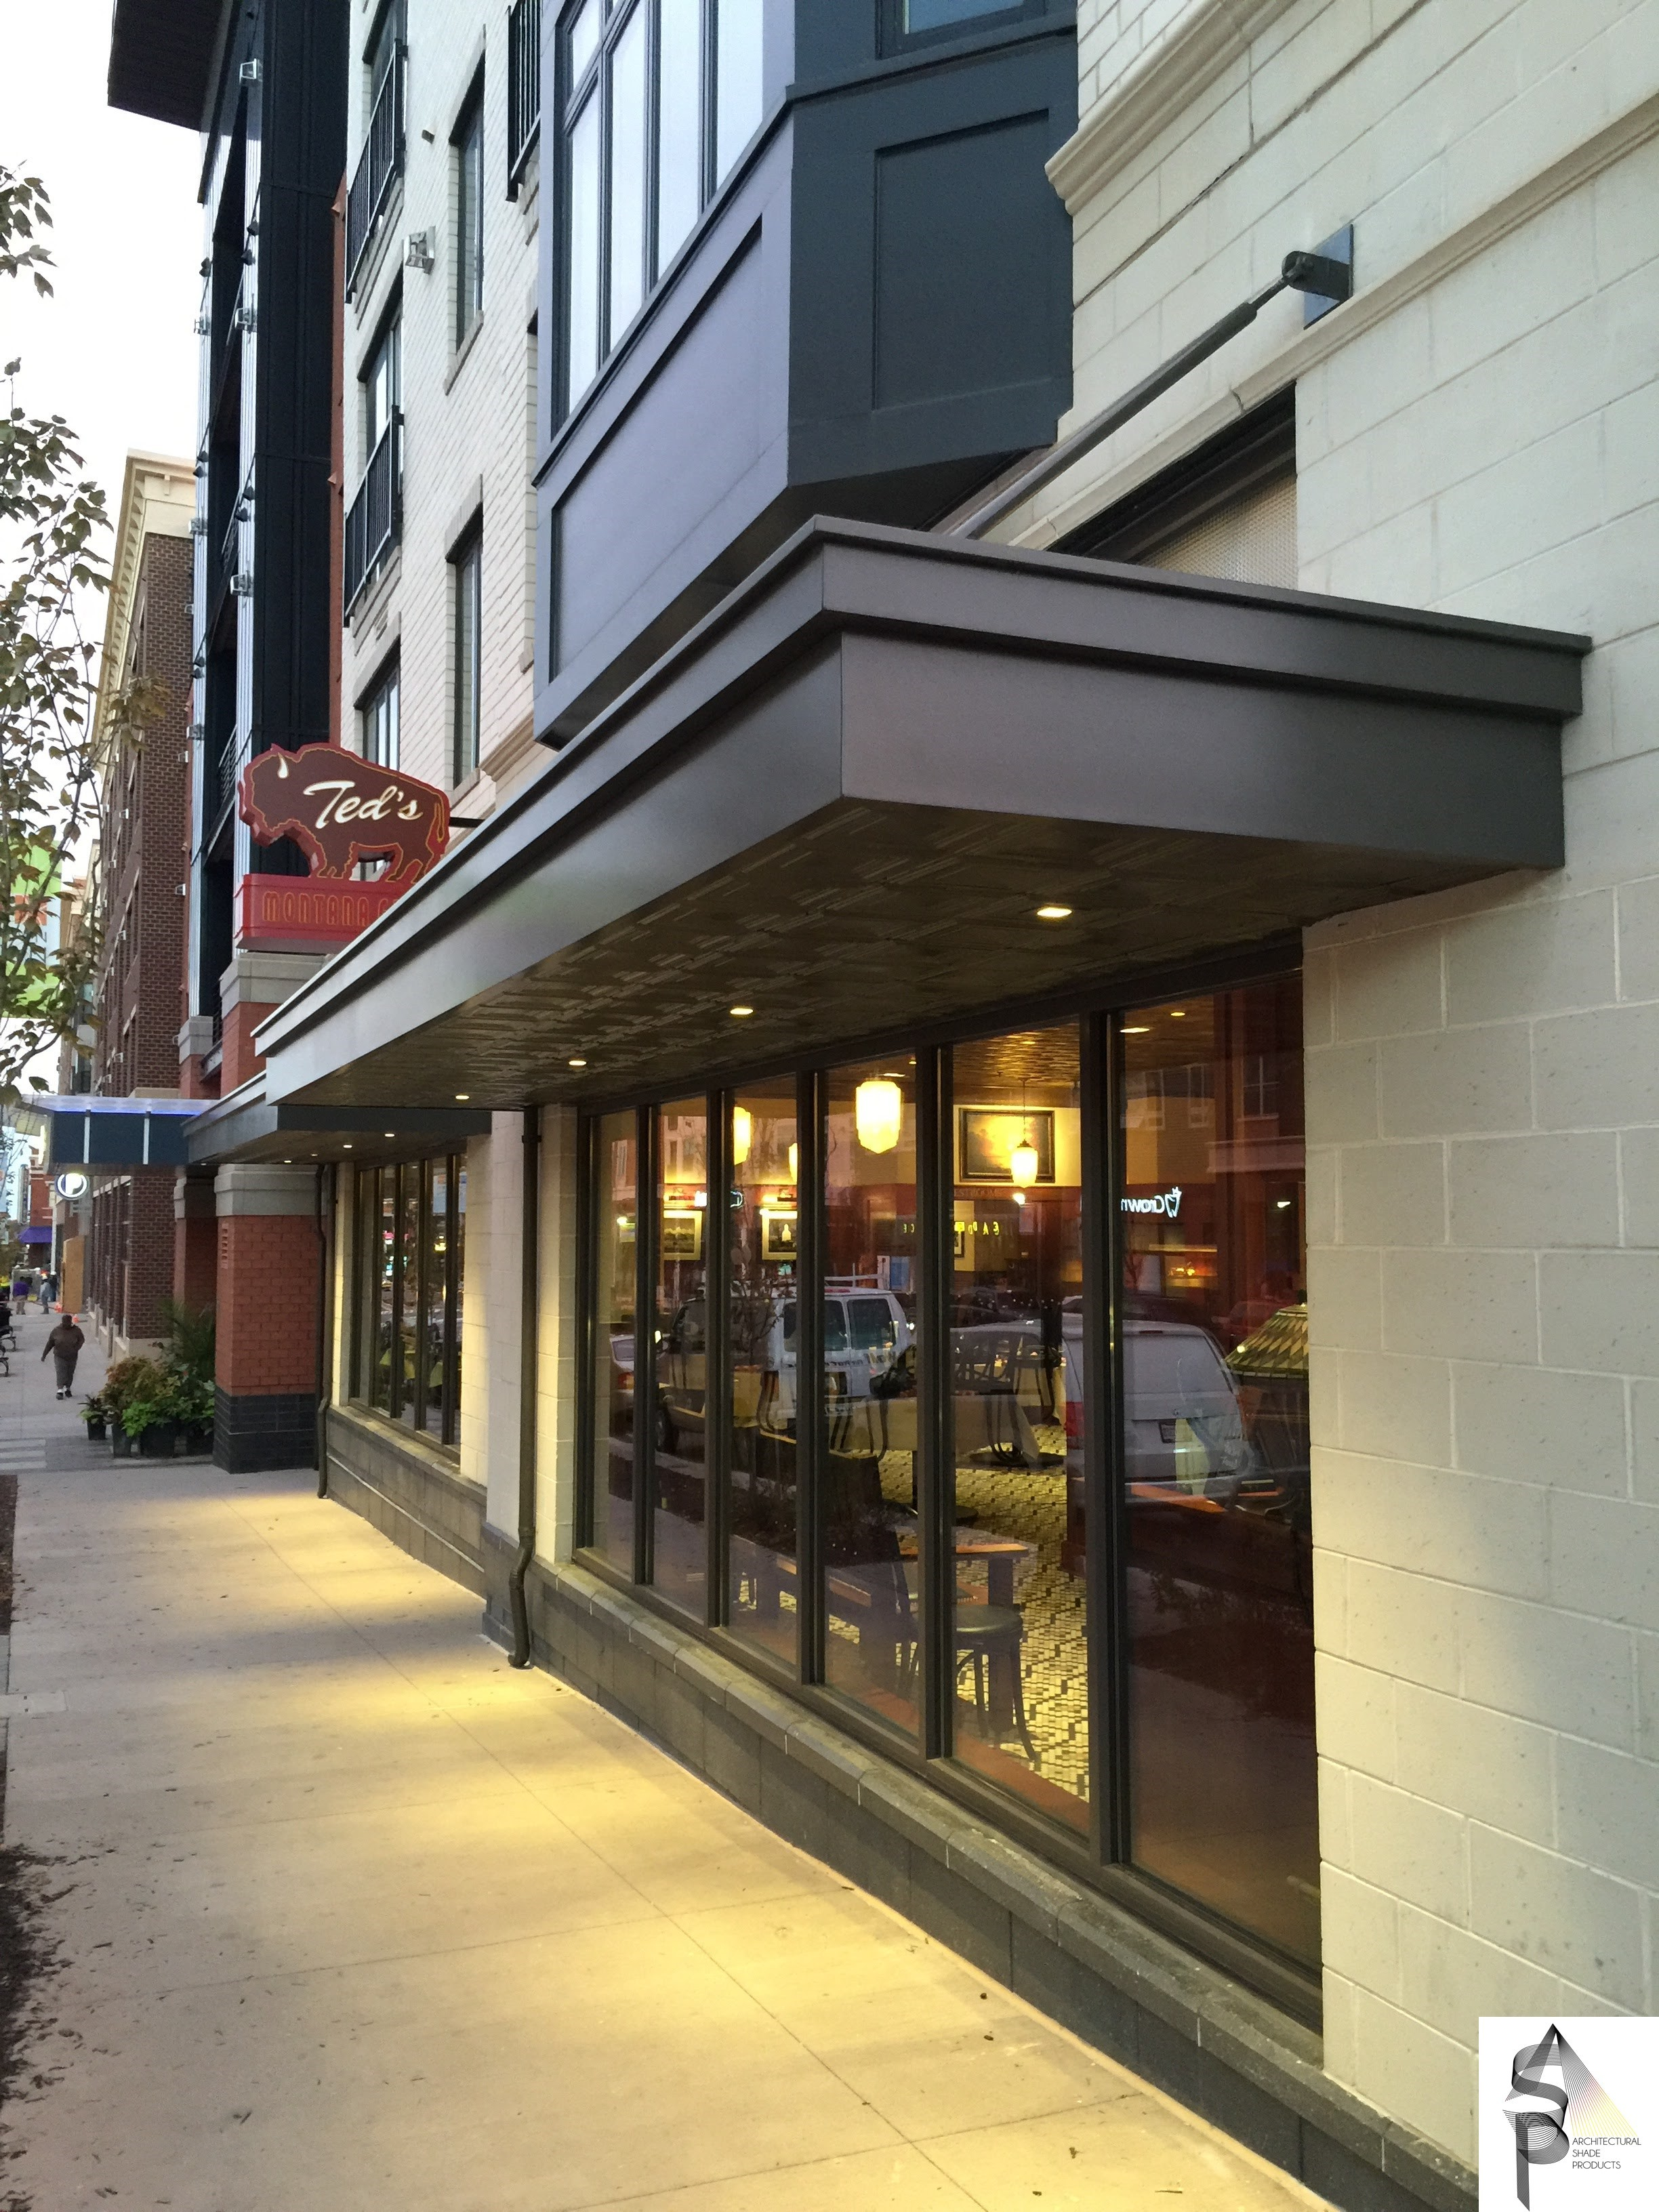 Tedu0027s Montana Grill Gaithersburg MD 2 & Architectural Canopies and Awnings | Precision Structural Engineering